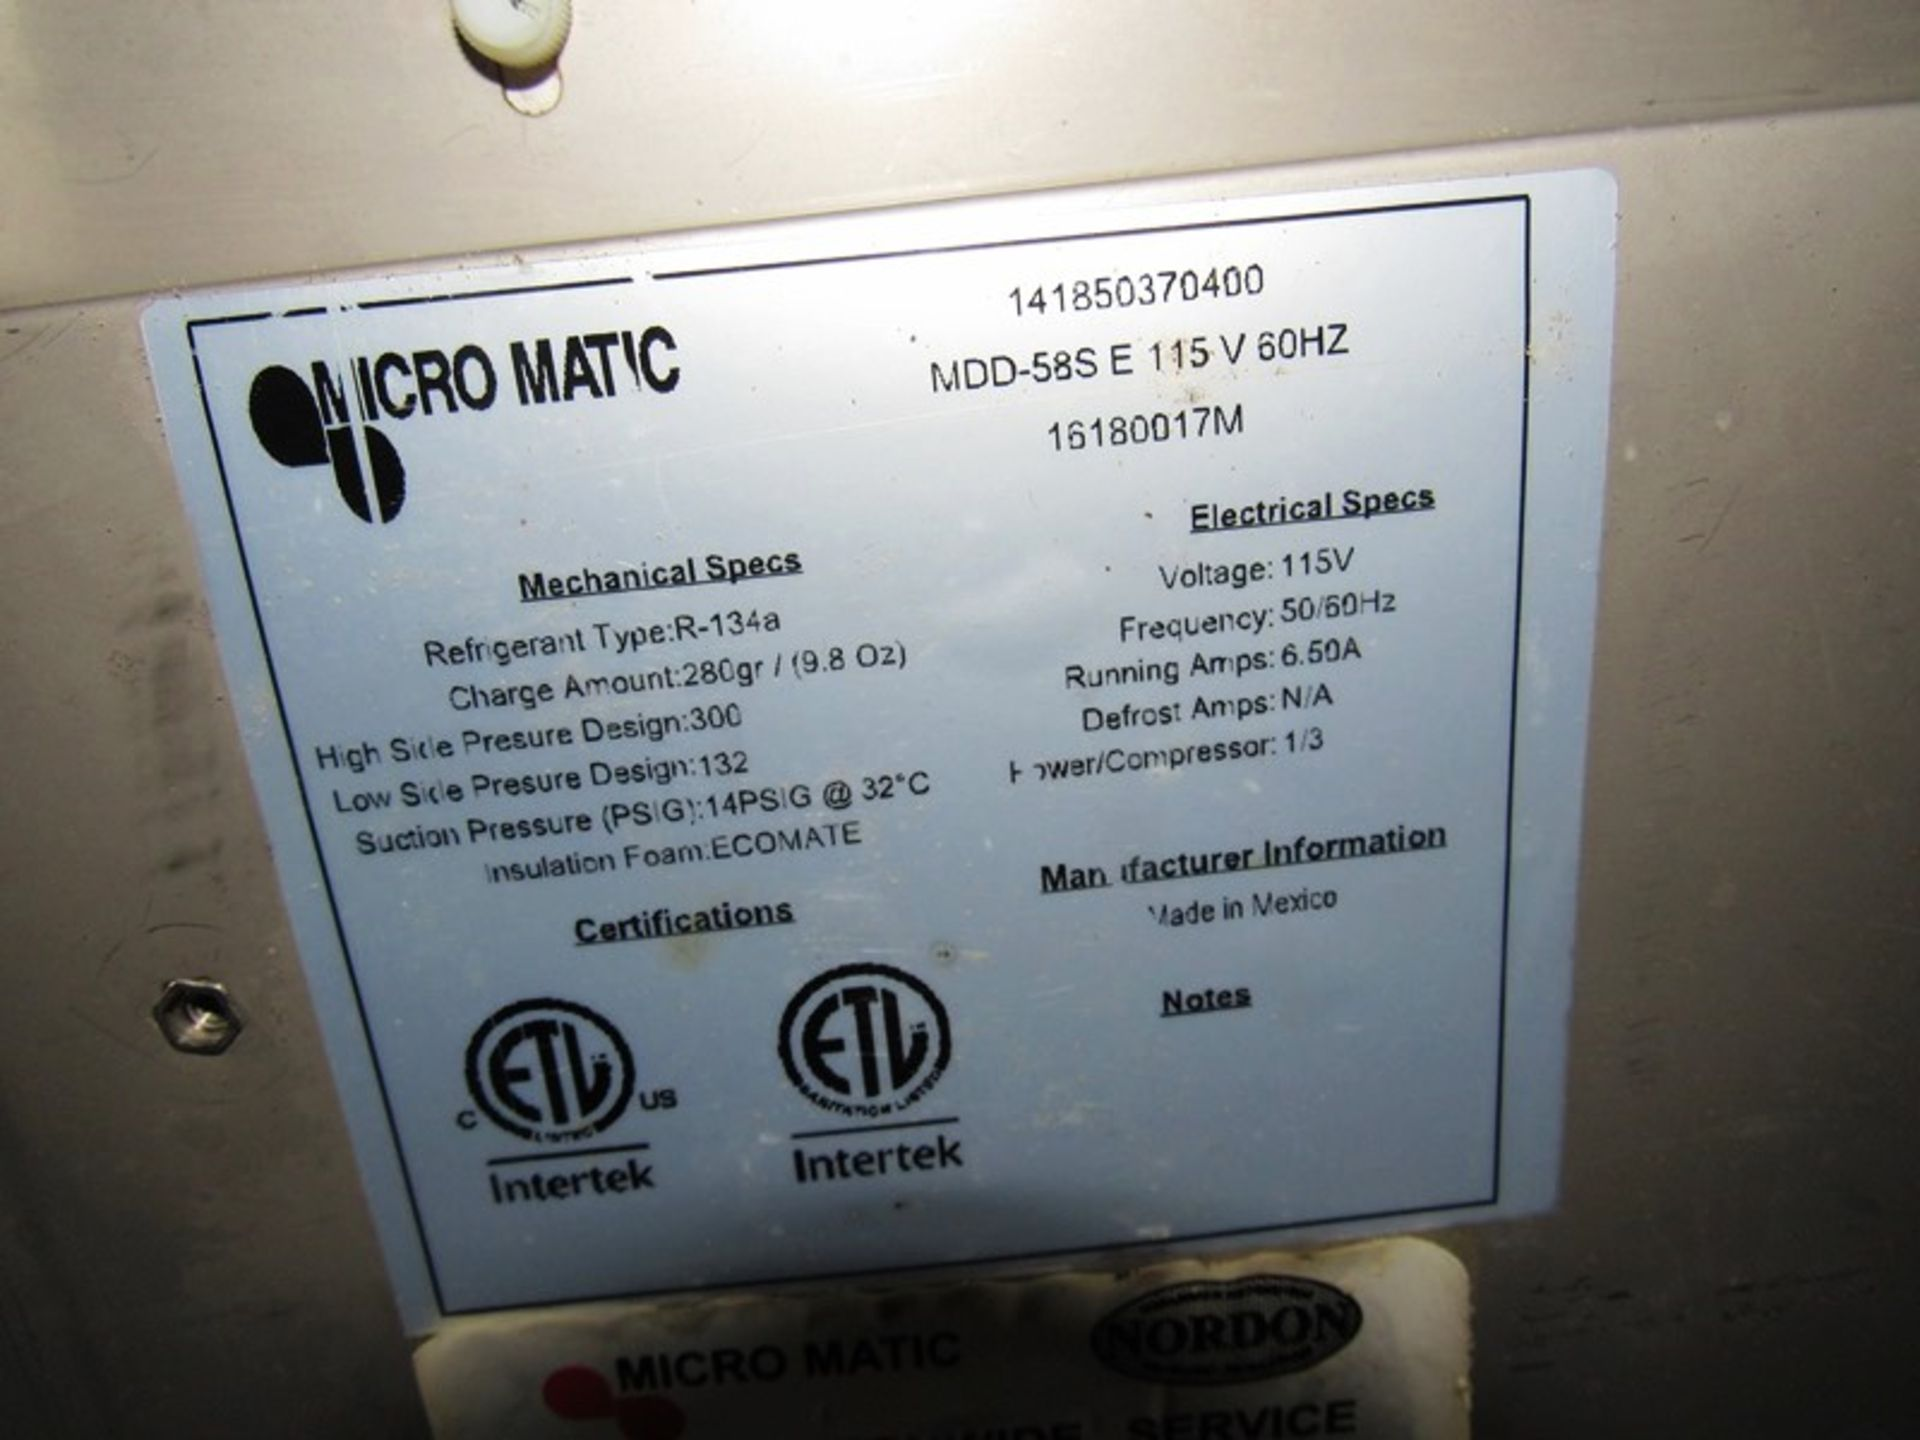 "Micromatic Mdl. MDD585-E Direct Draw Keg Refrigerator/Dispenser, (2) door, 29"" W X 5' L, stainless - Image 7 of 7"